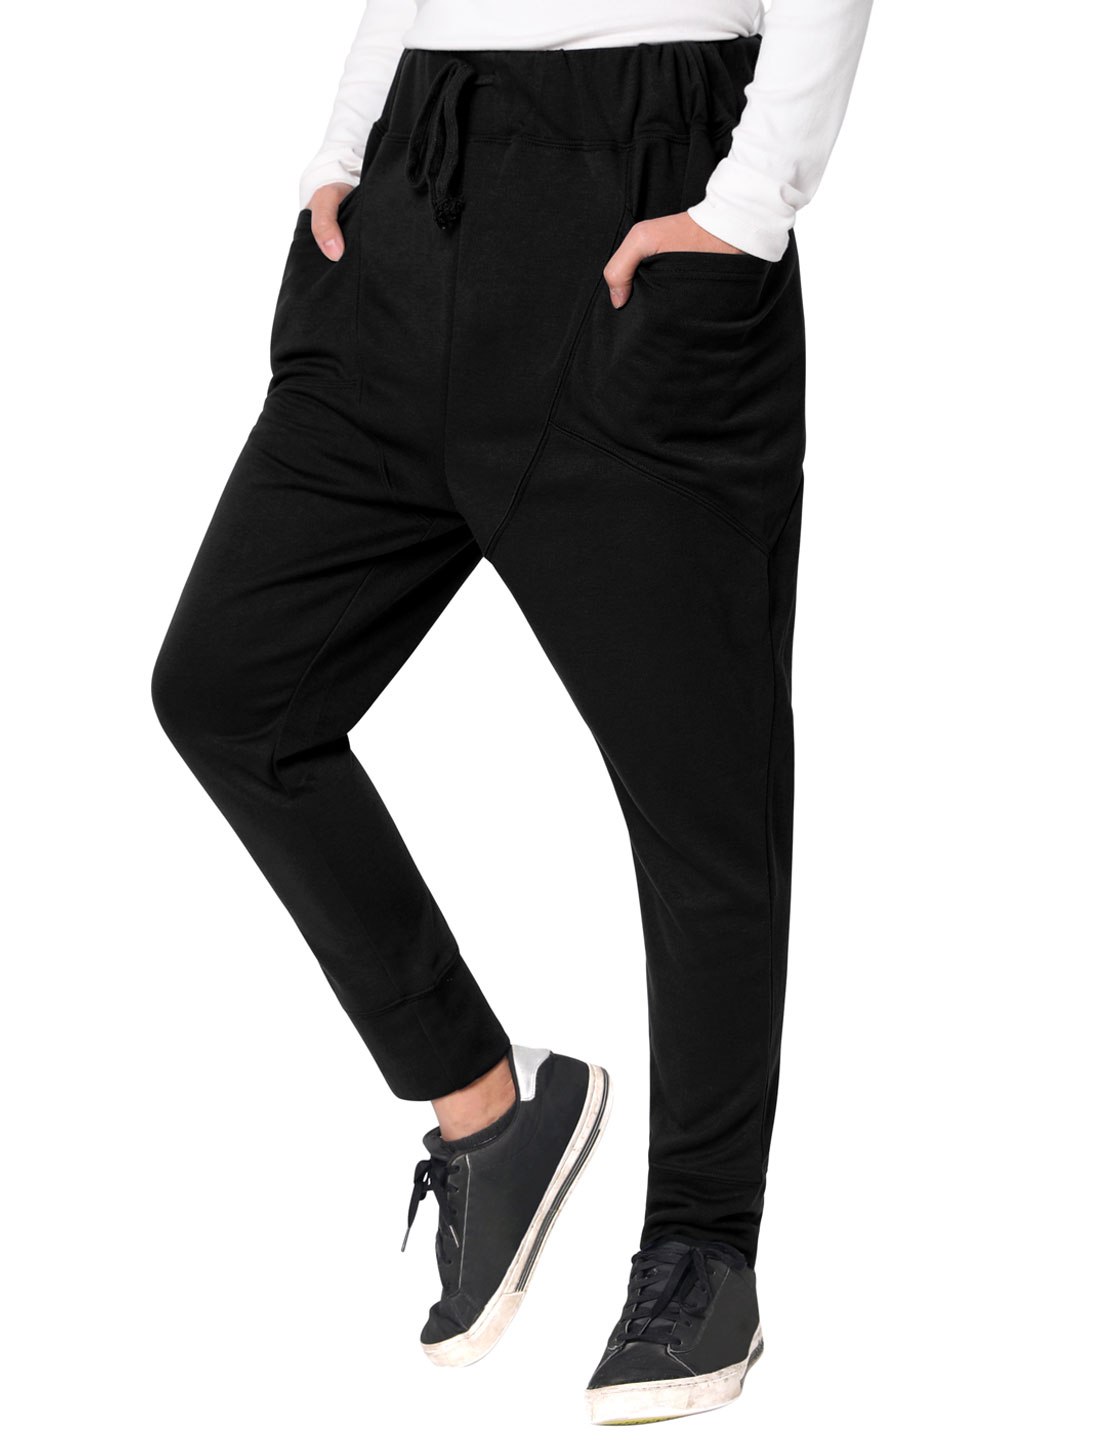 Mens Black Casual NEW Stylish Drawstring Elastic Waist Baggy Straight Pants Trousers W32/34